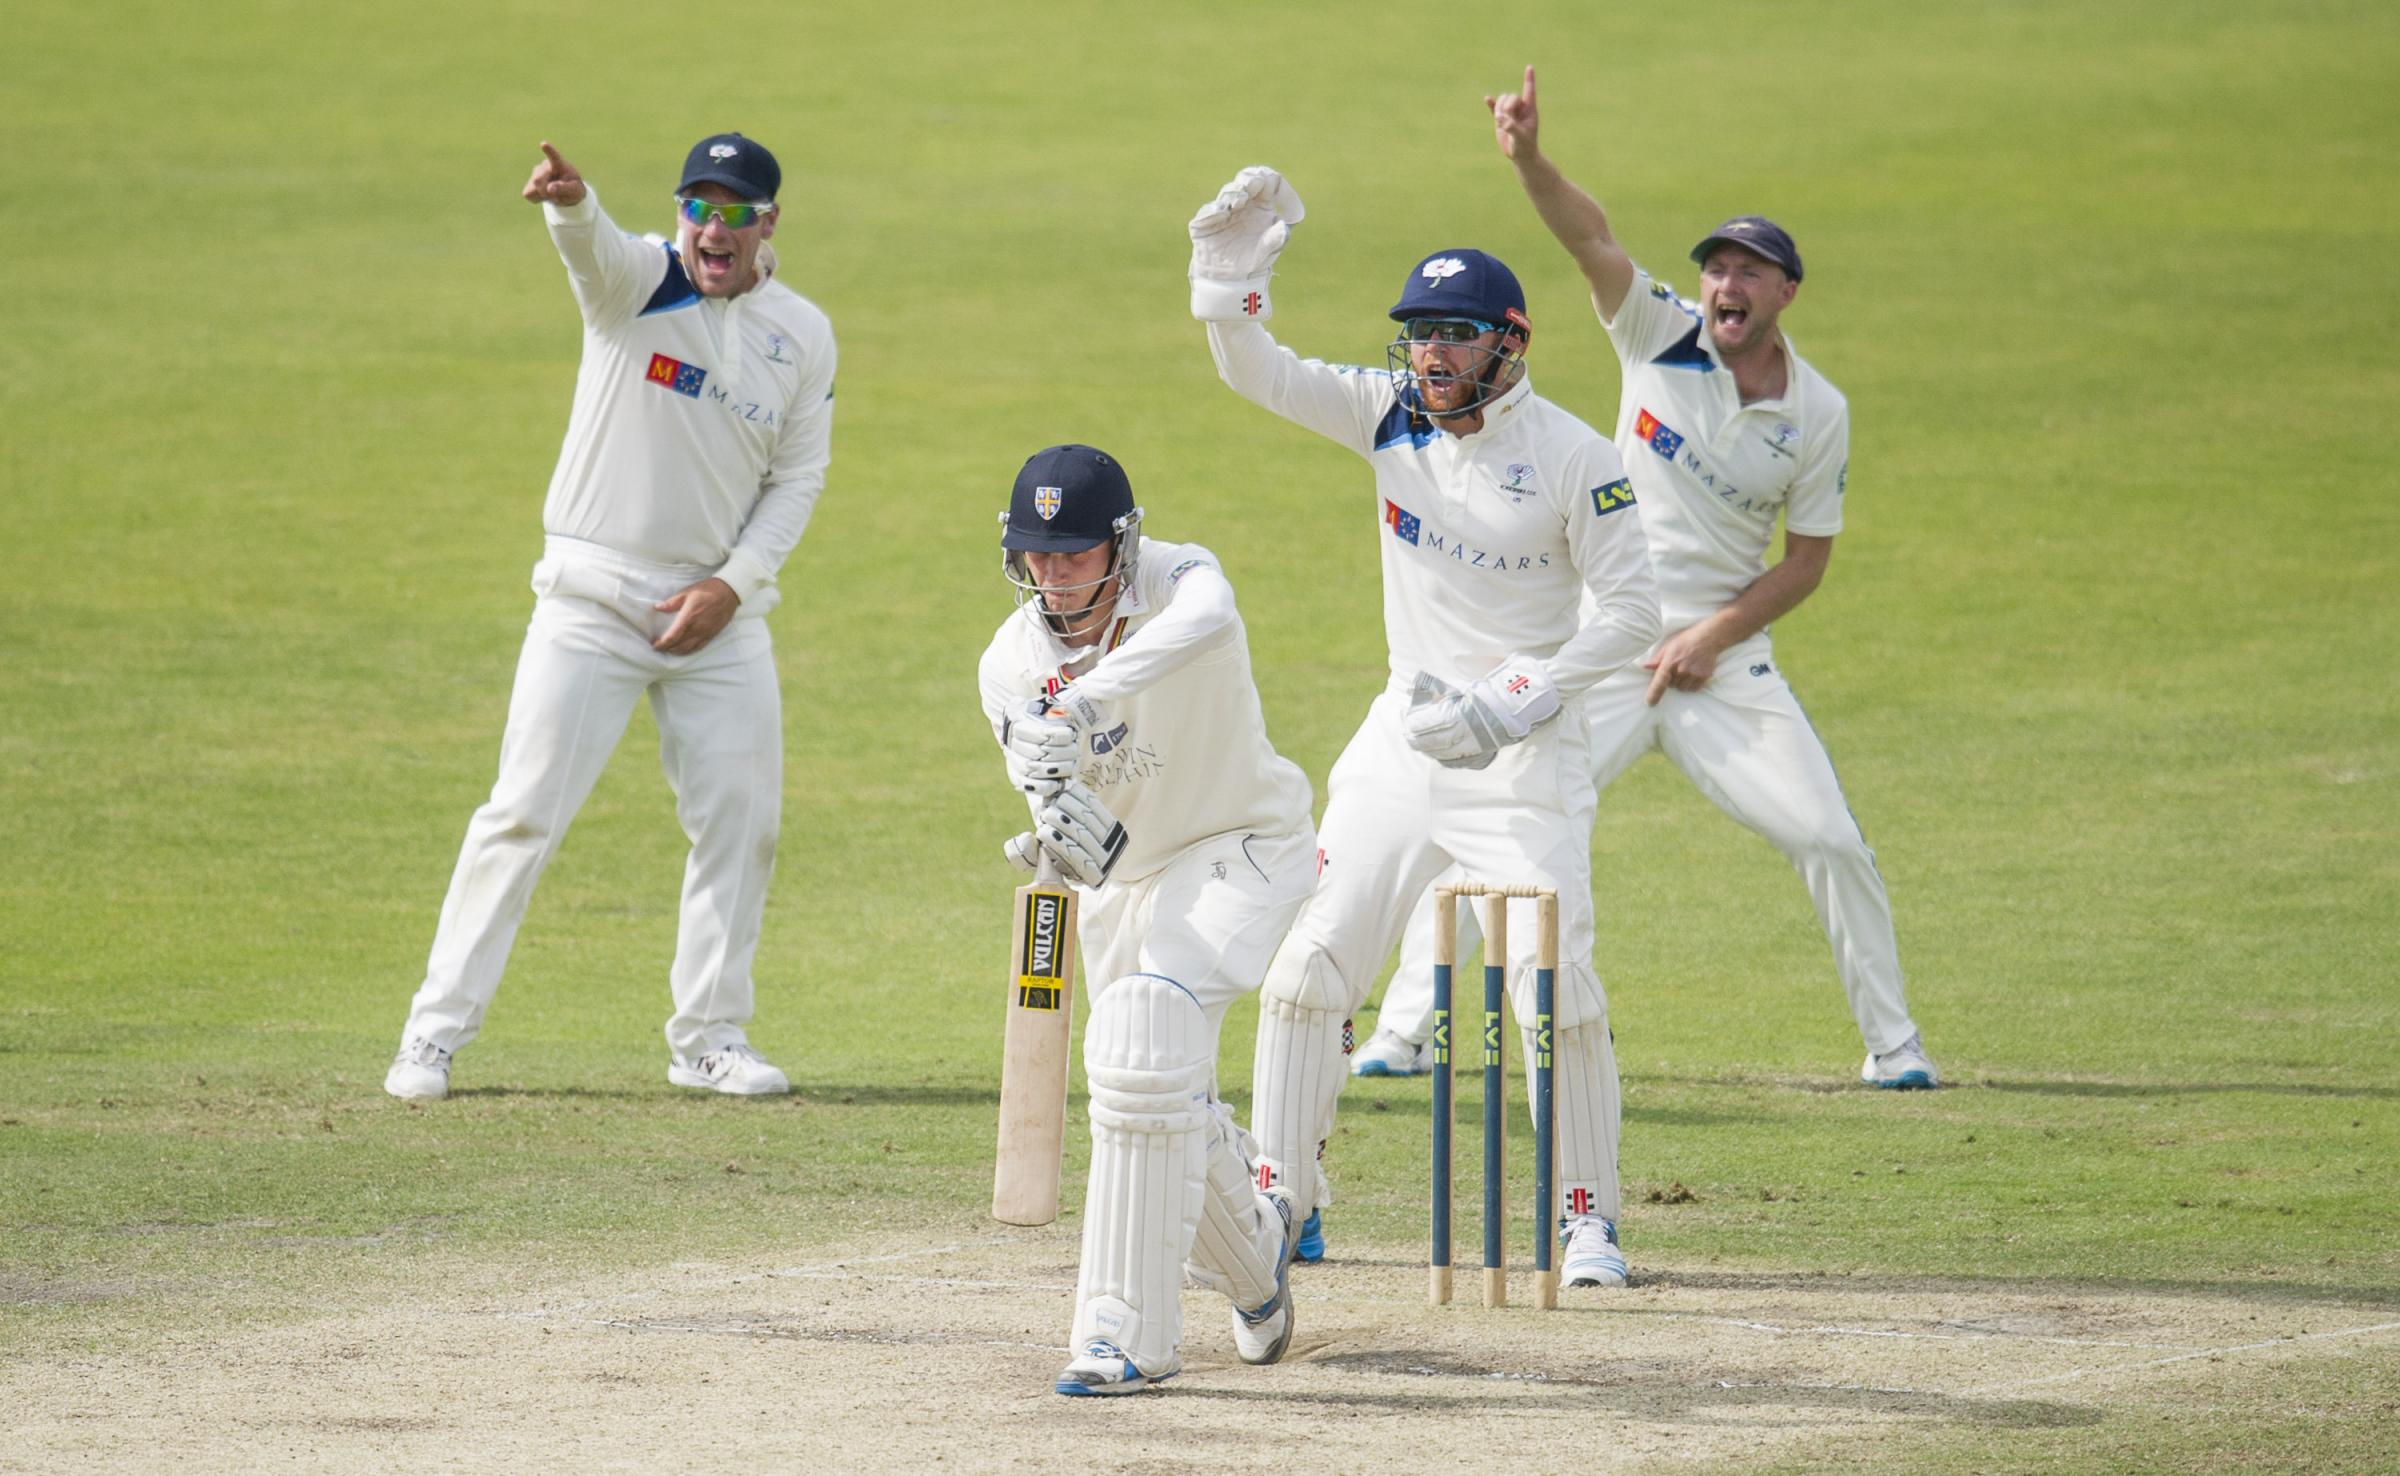 Yorkshire appeal for the wicket of Durham tailender Paul Coughlin